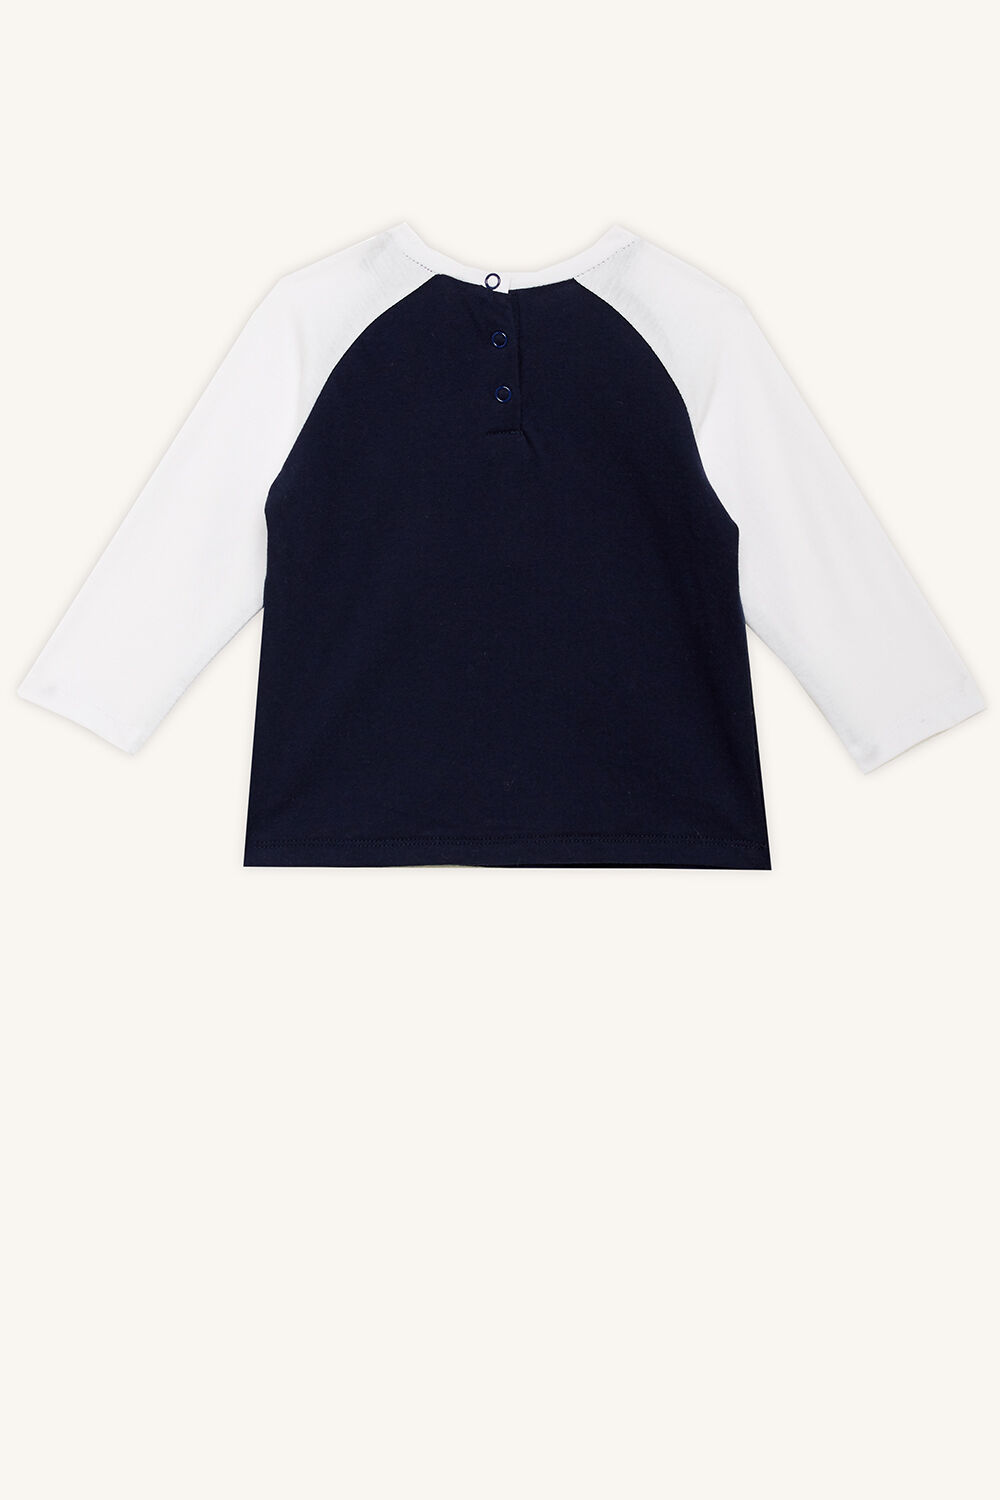 LIL KING LONG SLEEVE TOP in colour DRESS BLUES